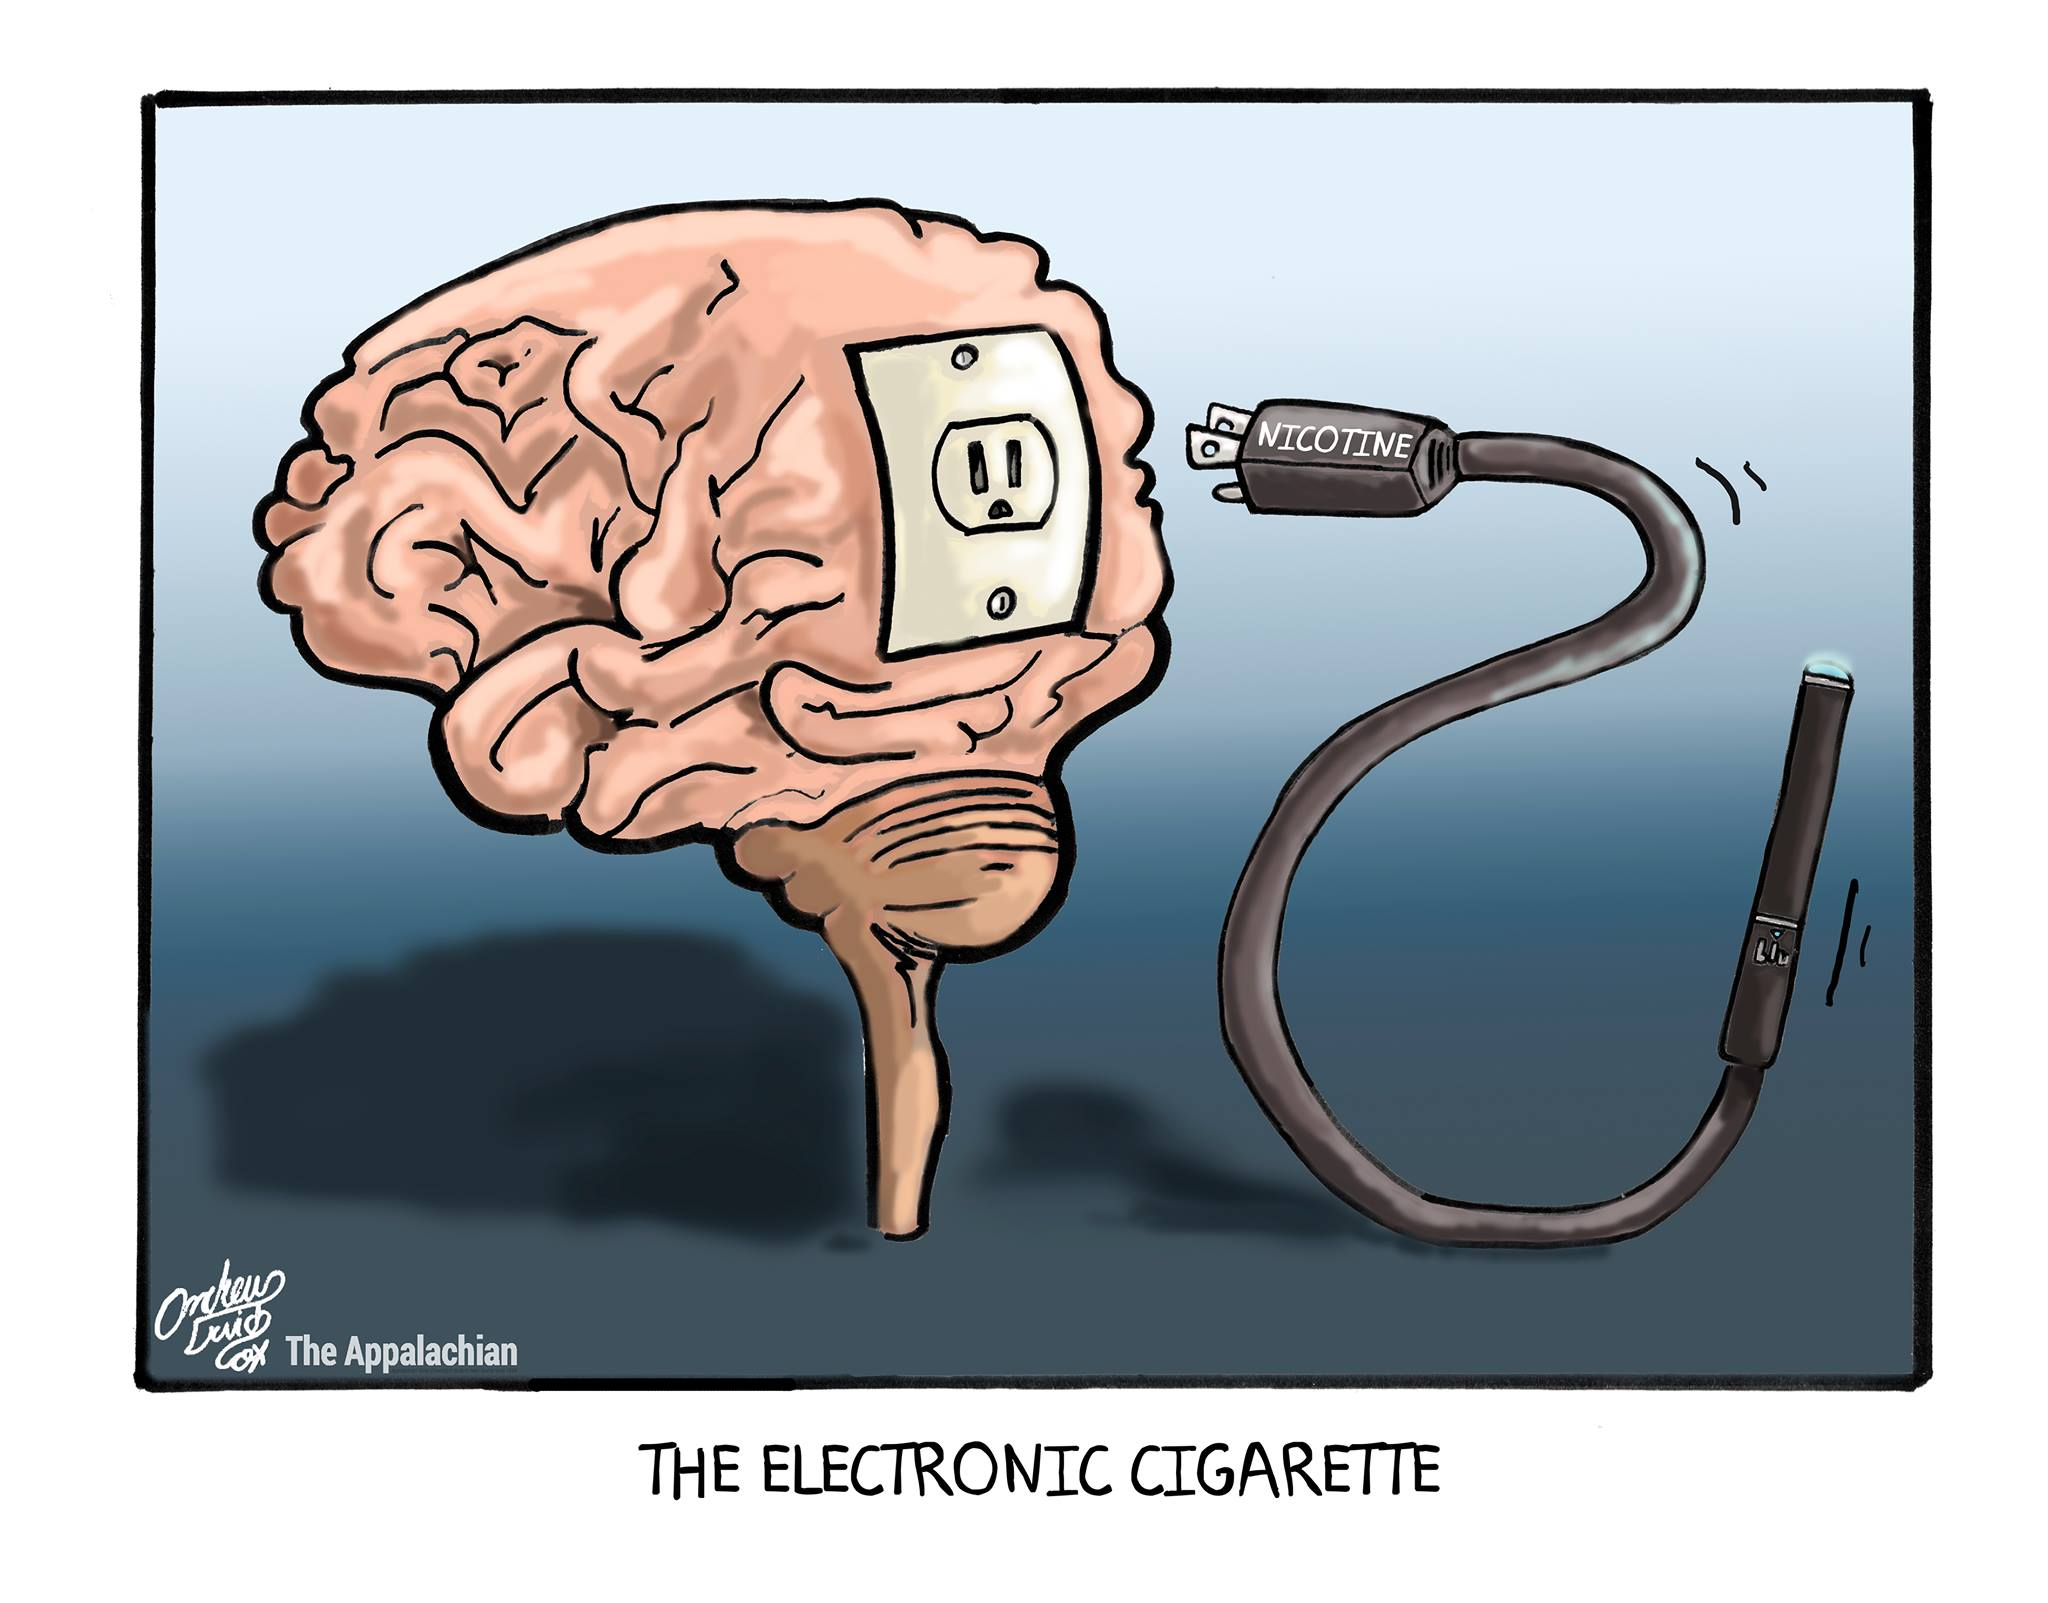 E-cigarettes just another nicotine plug